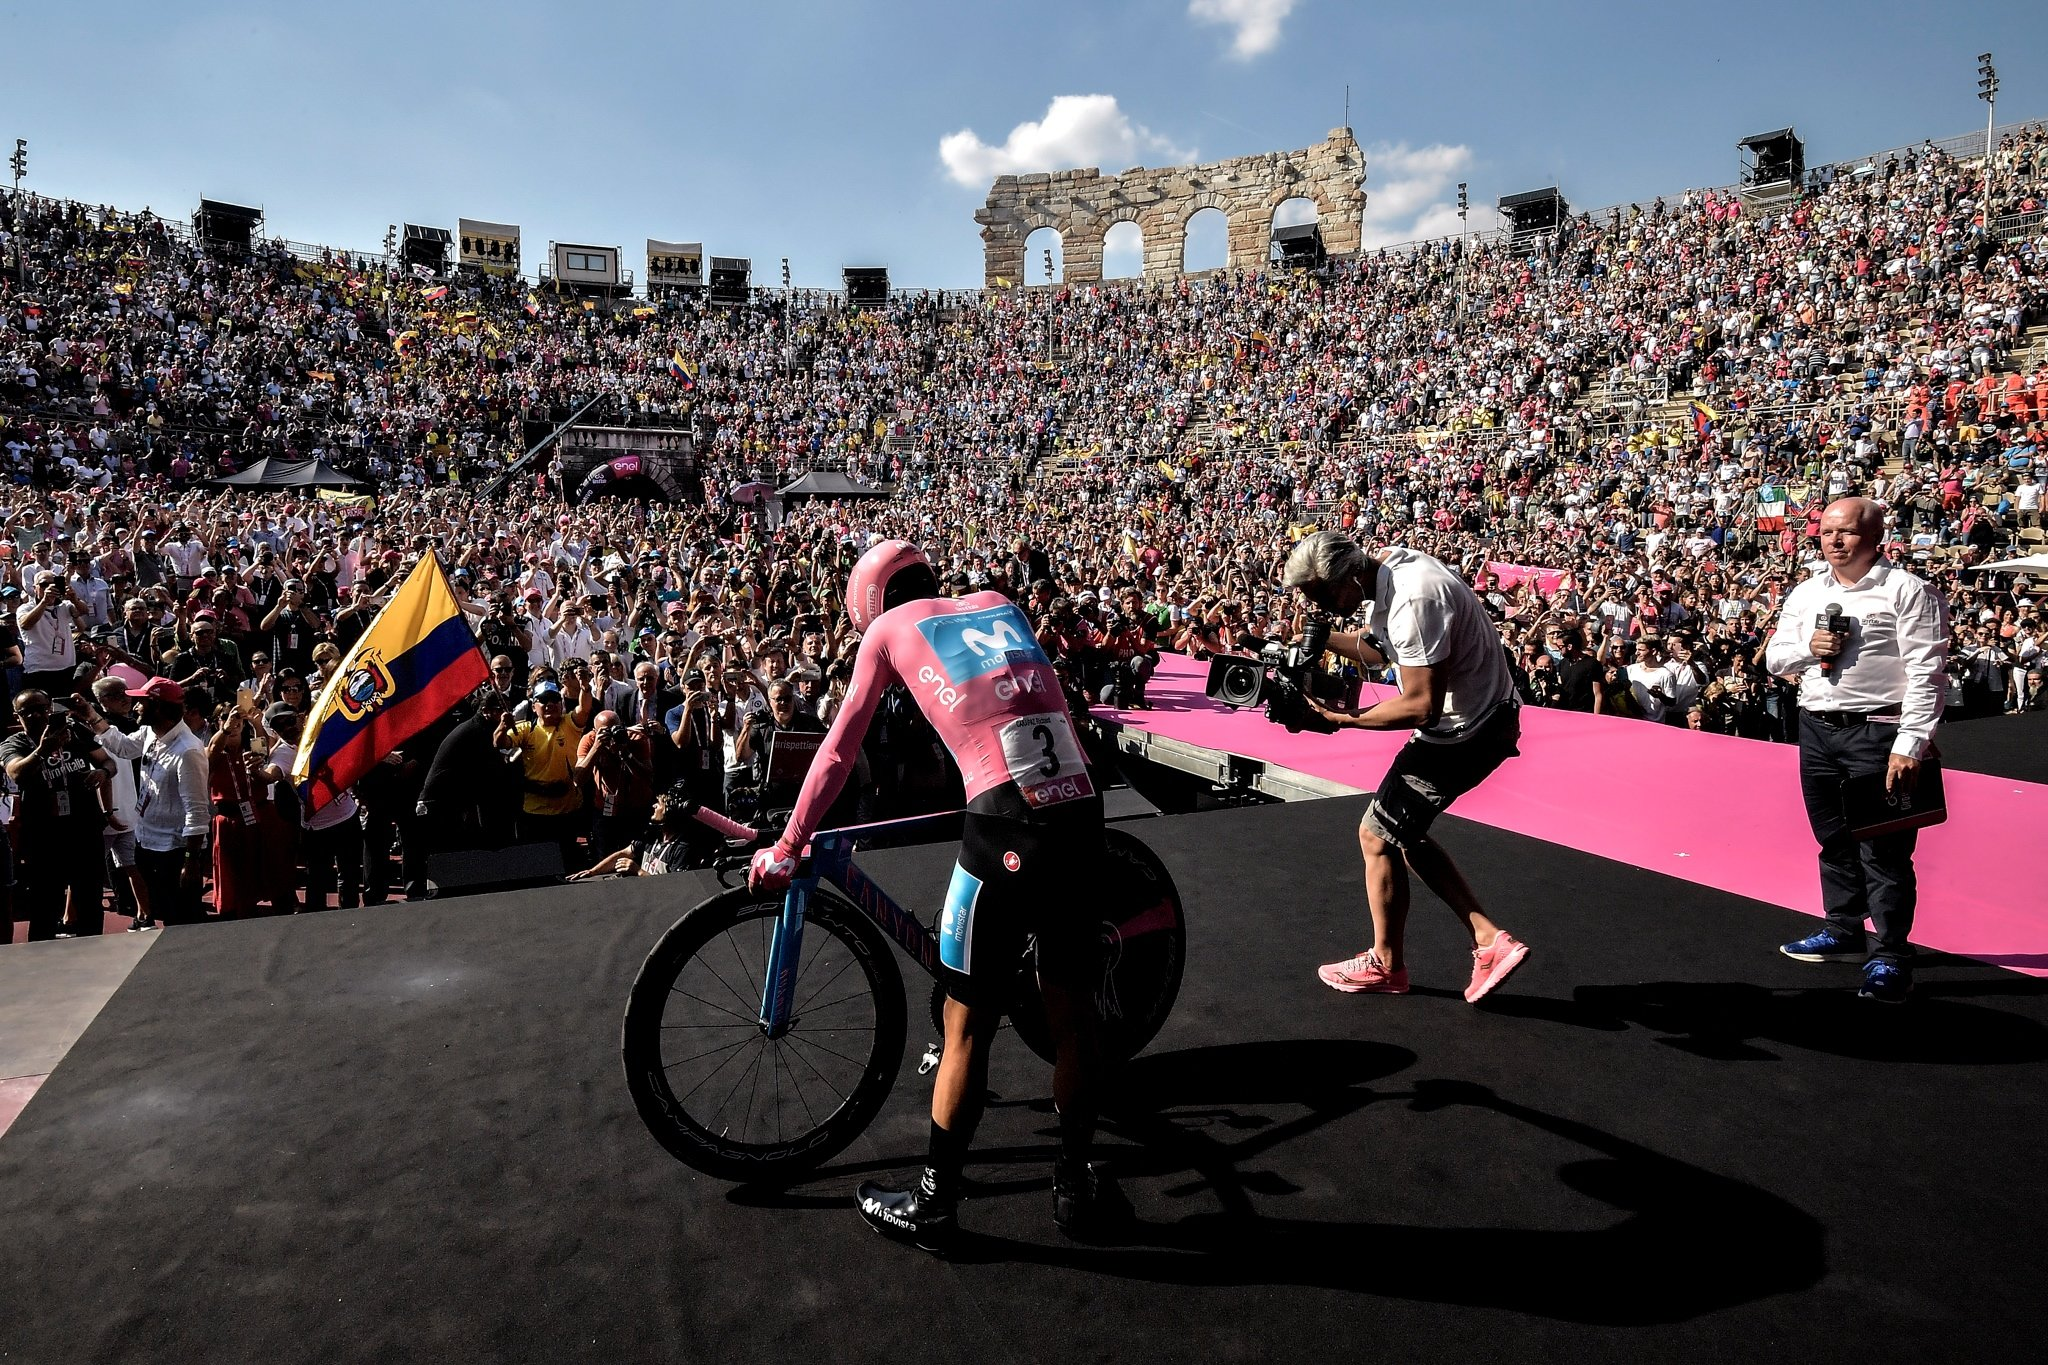 Foto Marco Alpozzi / LaPresse 02 Giugno 2019 Verona (Italia) Sport Ciclismo Giro d'Italia 2019 - edizione 102-  tappa 21 da Verona a Verona - Gara cronometro individuale -  km 17,0 Nella foto: CARAPAZ Richard (ECU)(MOVISTAR TEAM) maglia rosaPhoto Marco Alpozzi/ LaPresse June 02, 2019  Verona (Italy) Sport Cycling Giro d'Italia 2019 - 102th edition -  stage 21 from Verona to Verona to Individual Time Trial In the pic: CARAPAZ Richard (ECU)(MOVISTAR TEAM) pink jersey